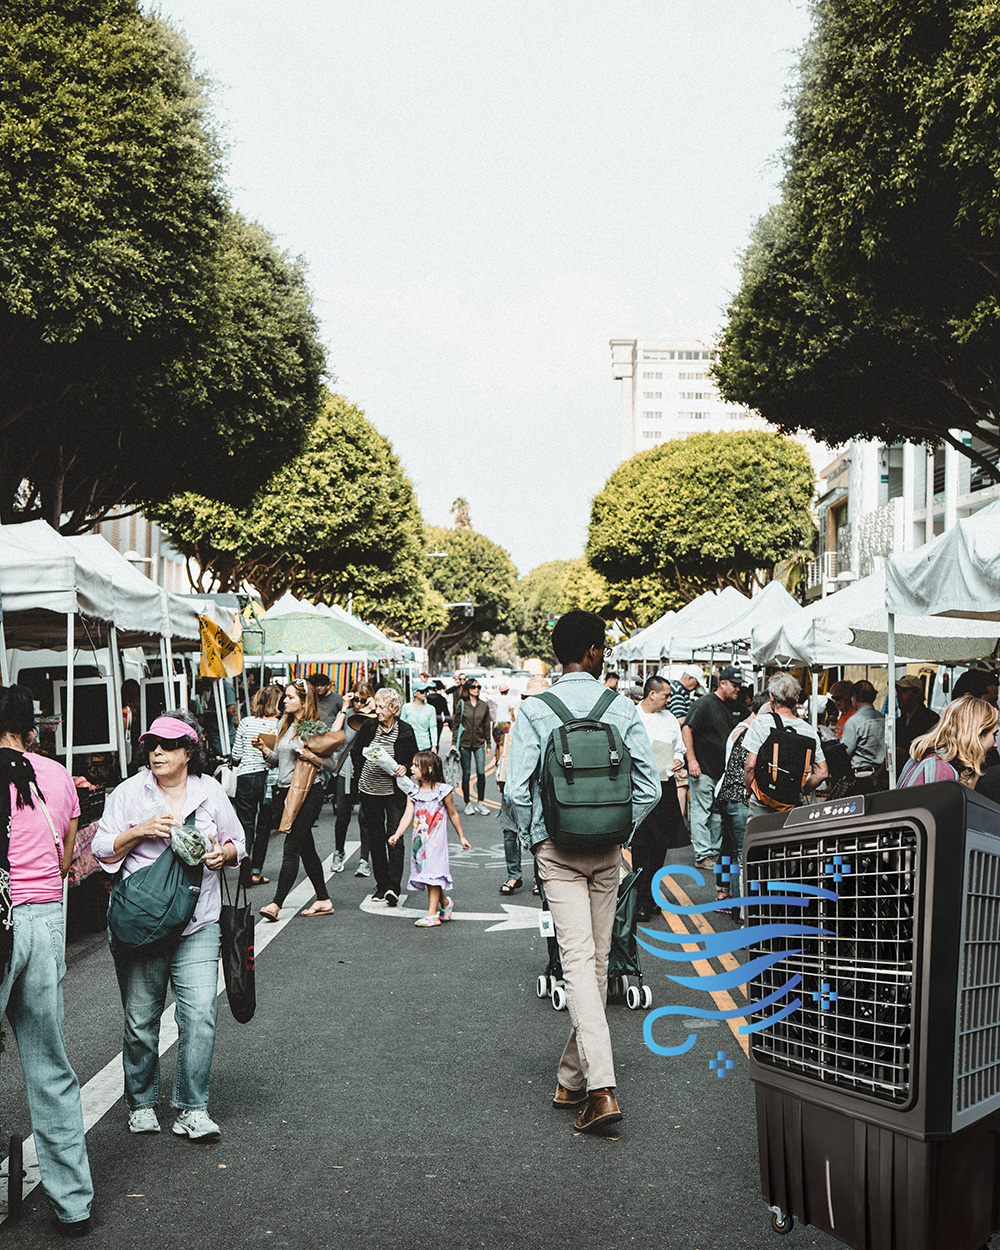 outdoor event or markets